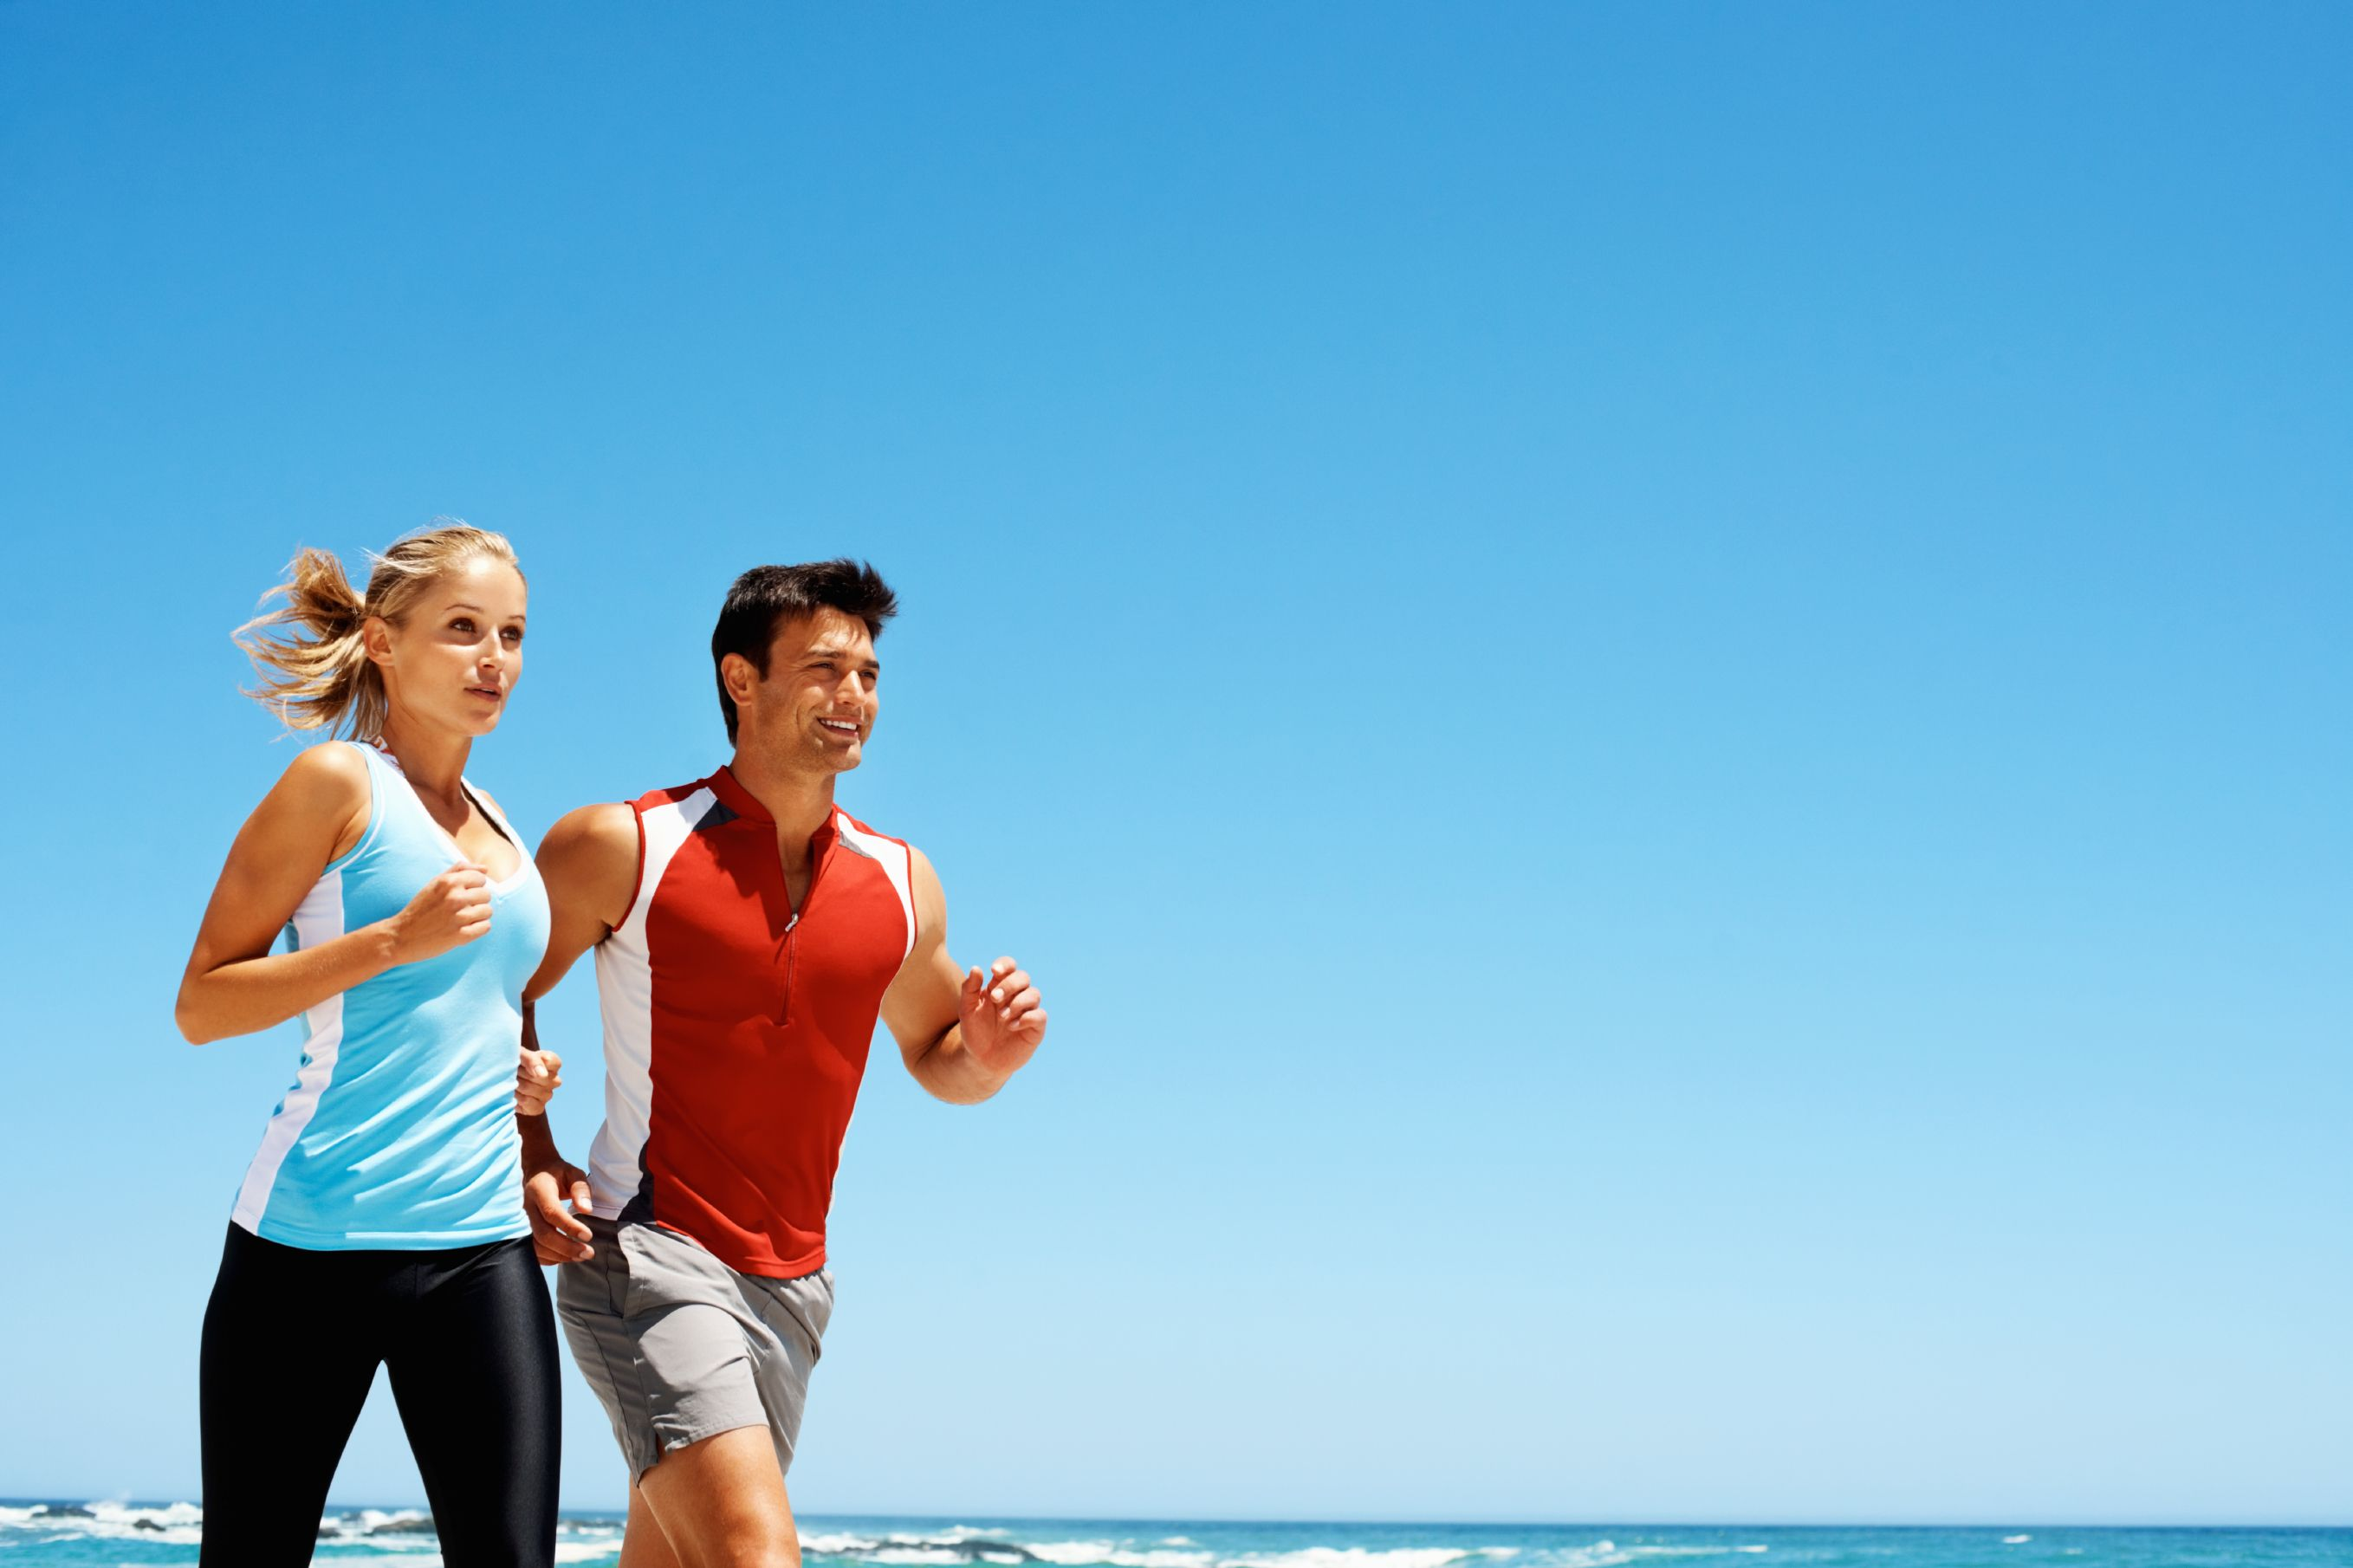 Exercise Makes You Happy Excellent Little Article To Get You